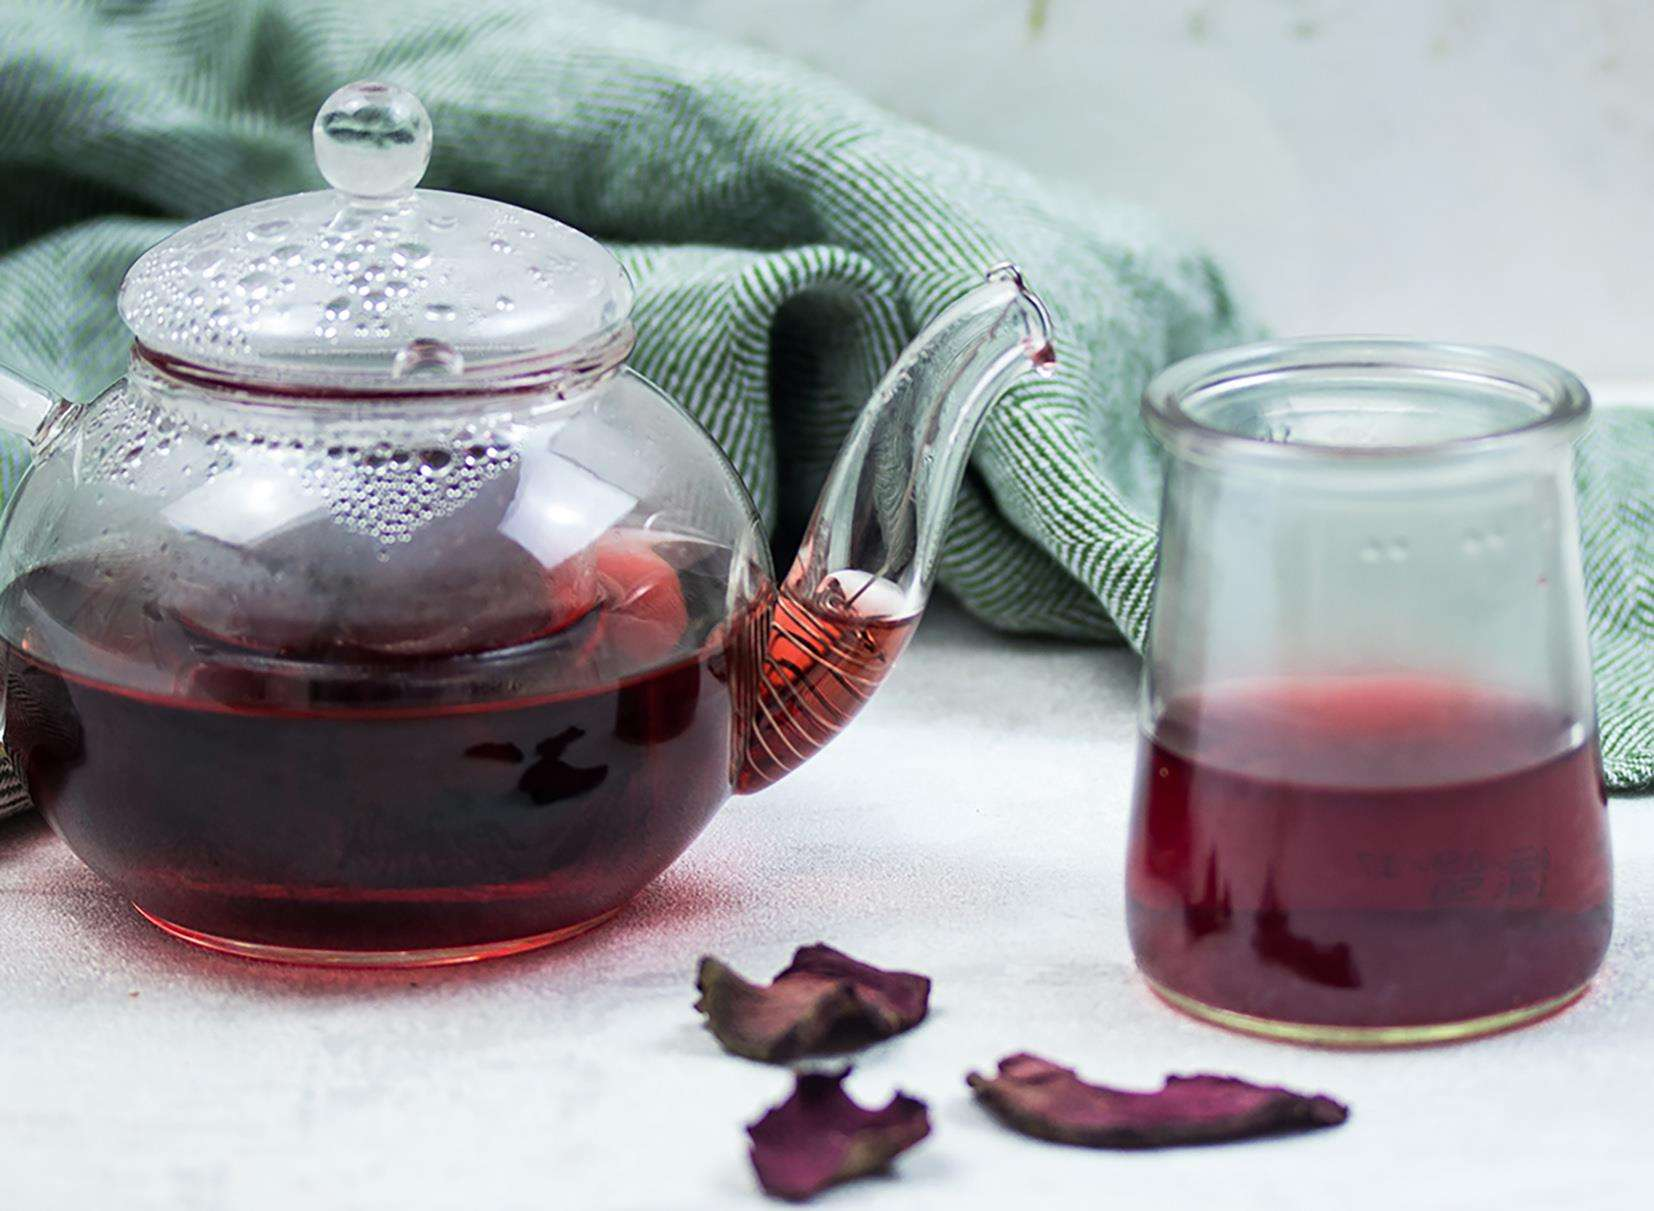 Nim's Teas is the latest line from Kent firm (6436213)